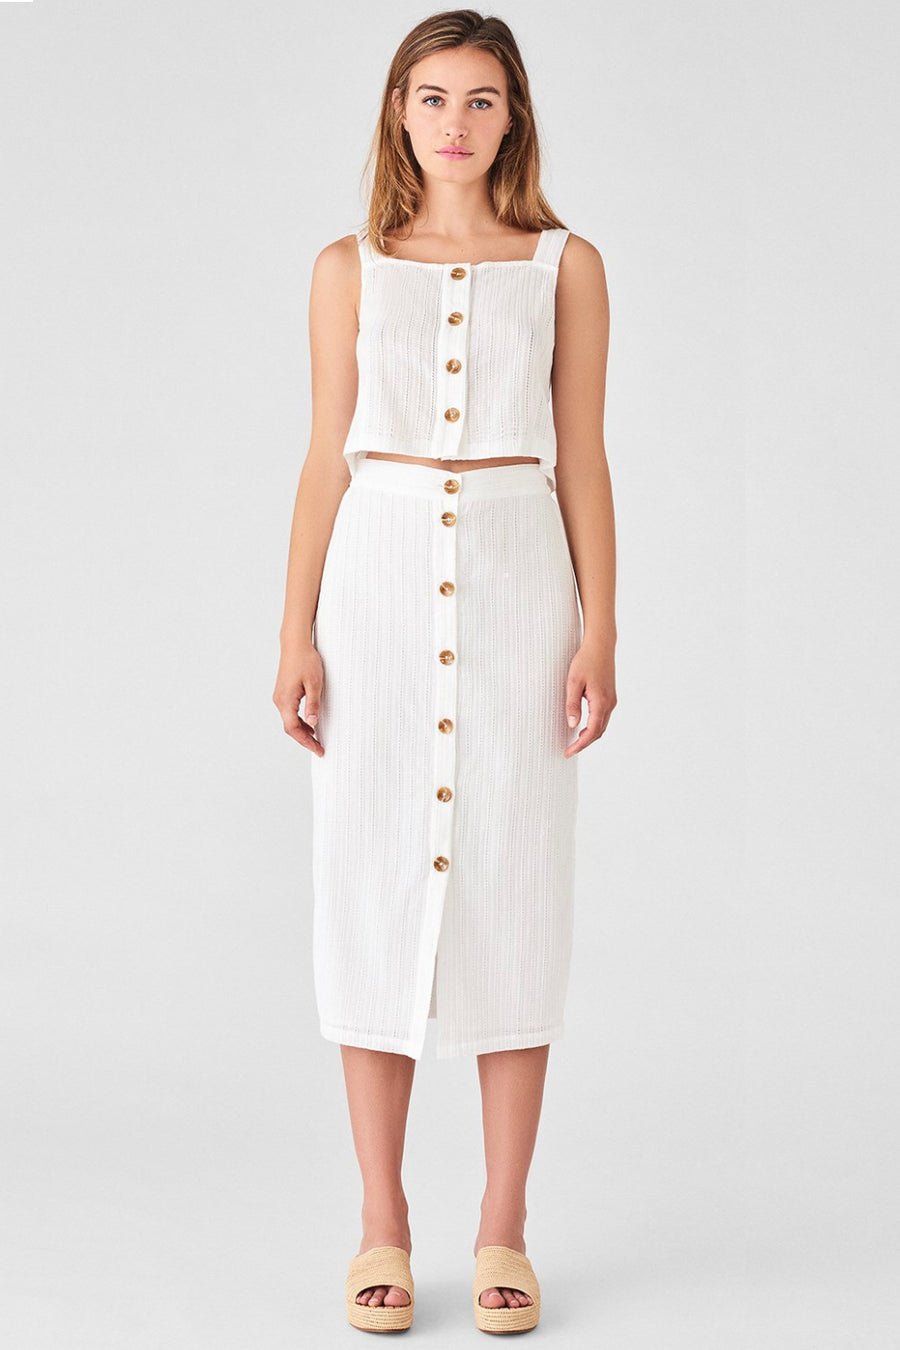 High Street Skirt - White Eyelet